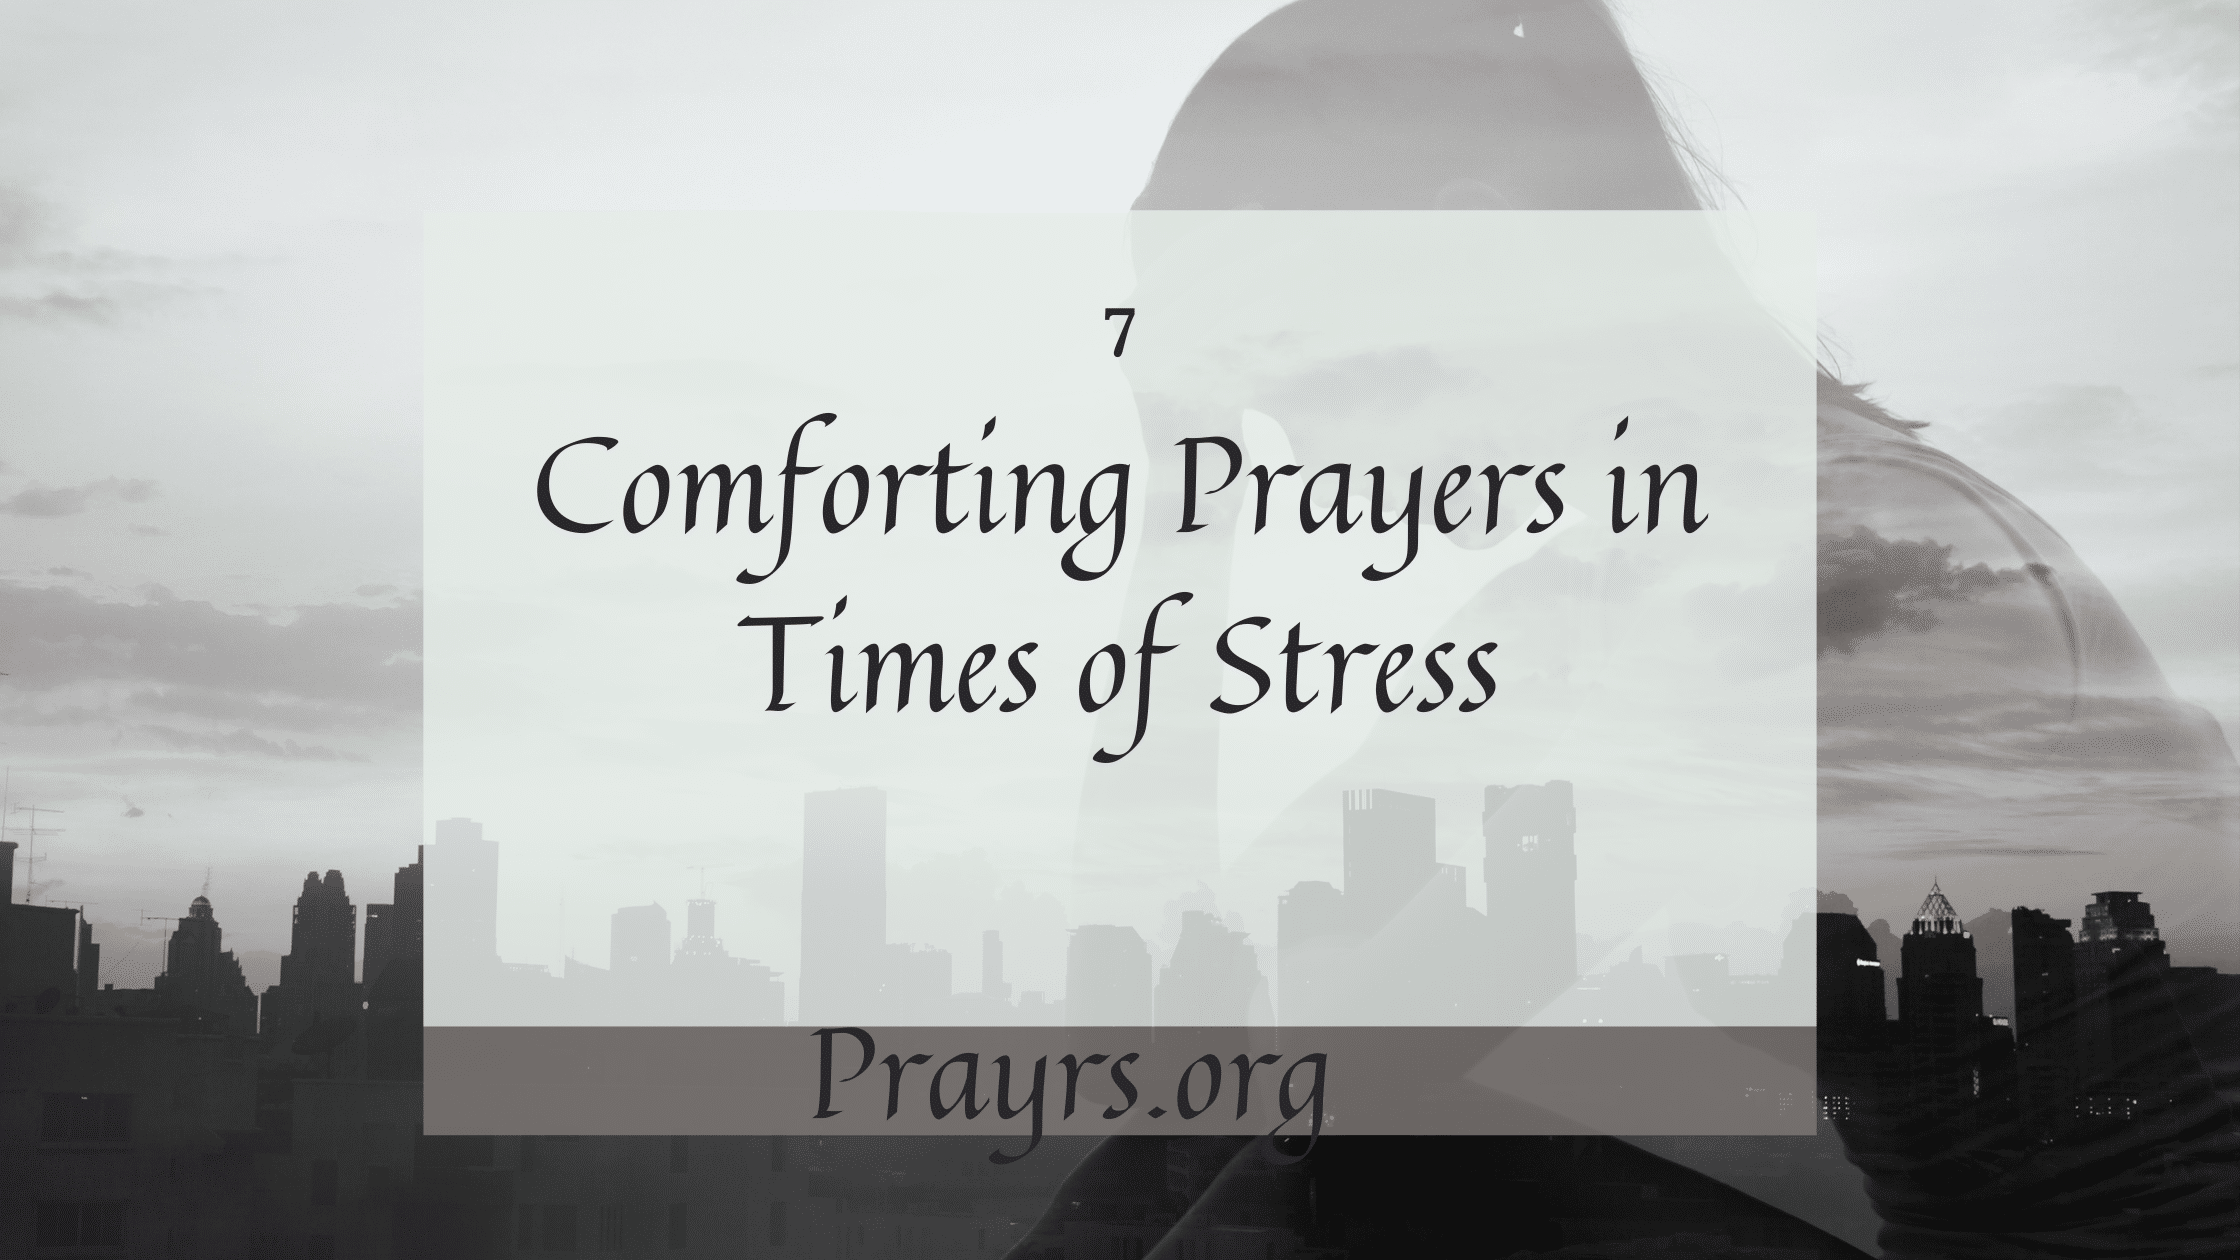 Prayers in Times of Stress